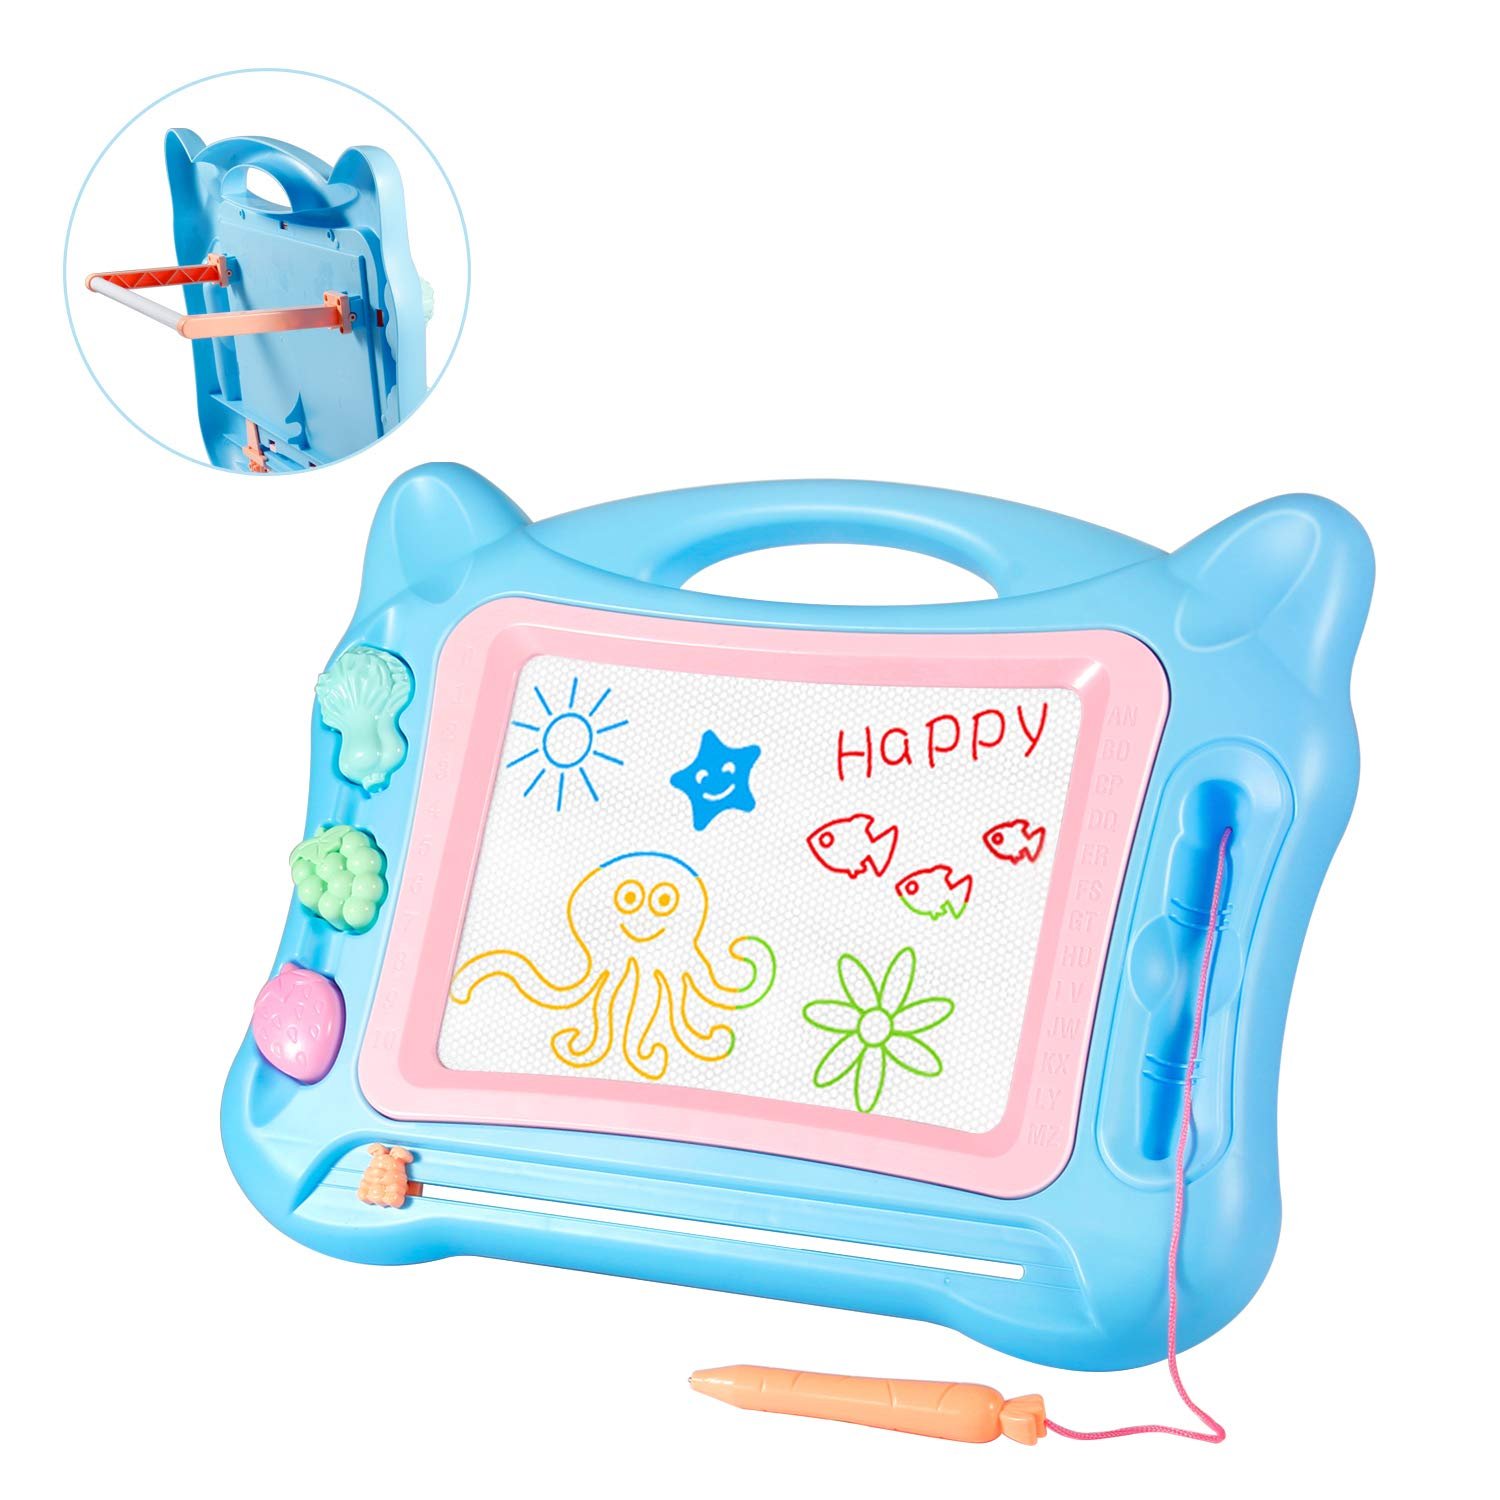 Geekper Magnetic Drawing Board Toy Extra Large 17.1 X 12.9 Magna Doodles with Foldable Stand Fruit 3 Stamps Blue Education Doodle for Kids Sketch Erasable Pad Writing Tablet for Toddlers